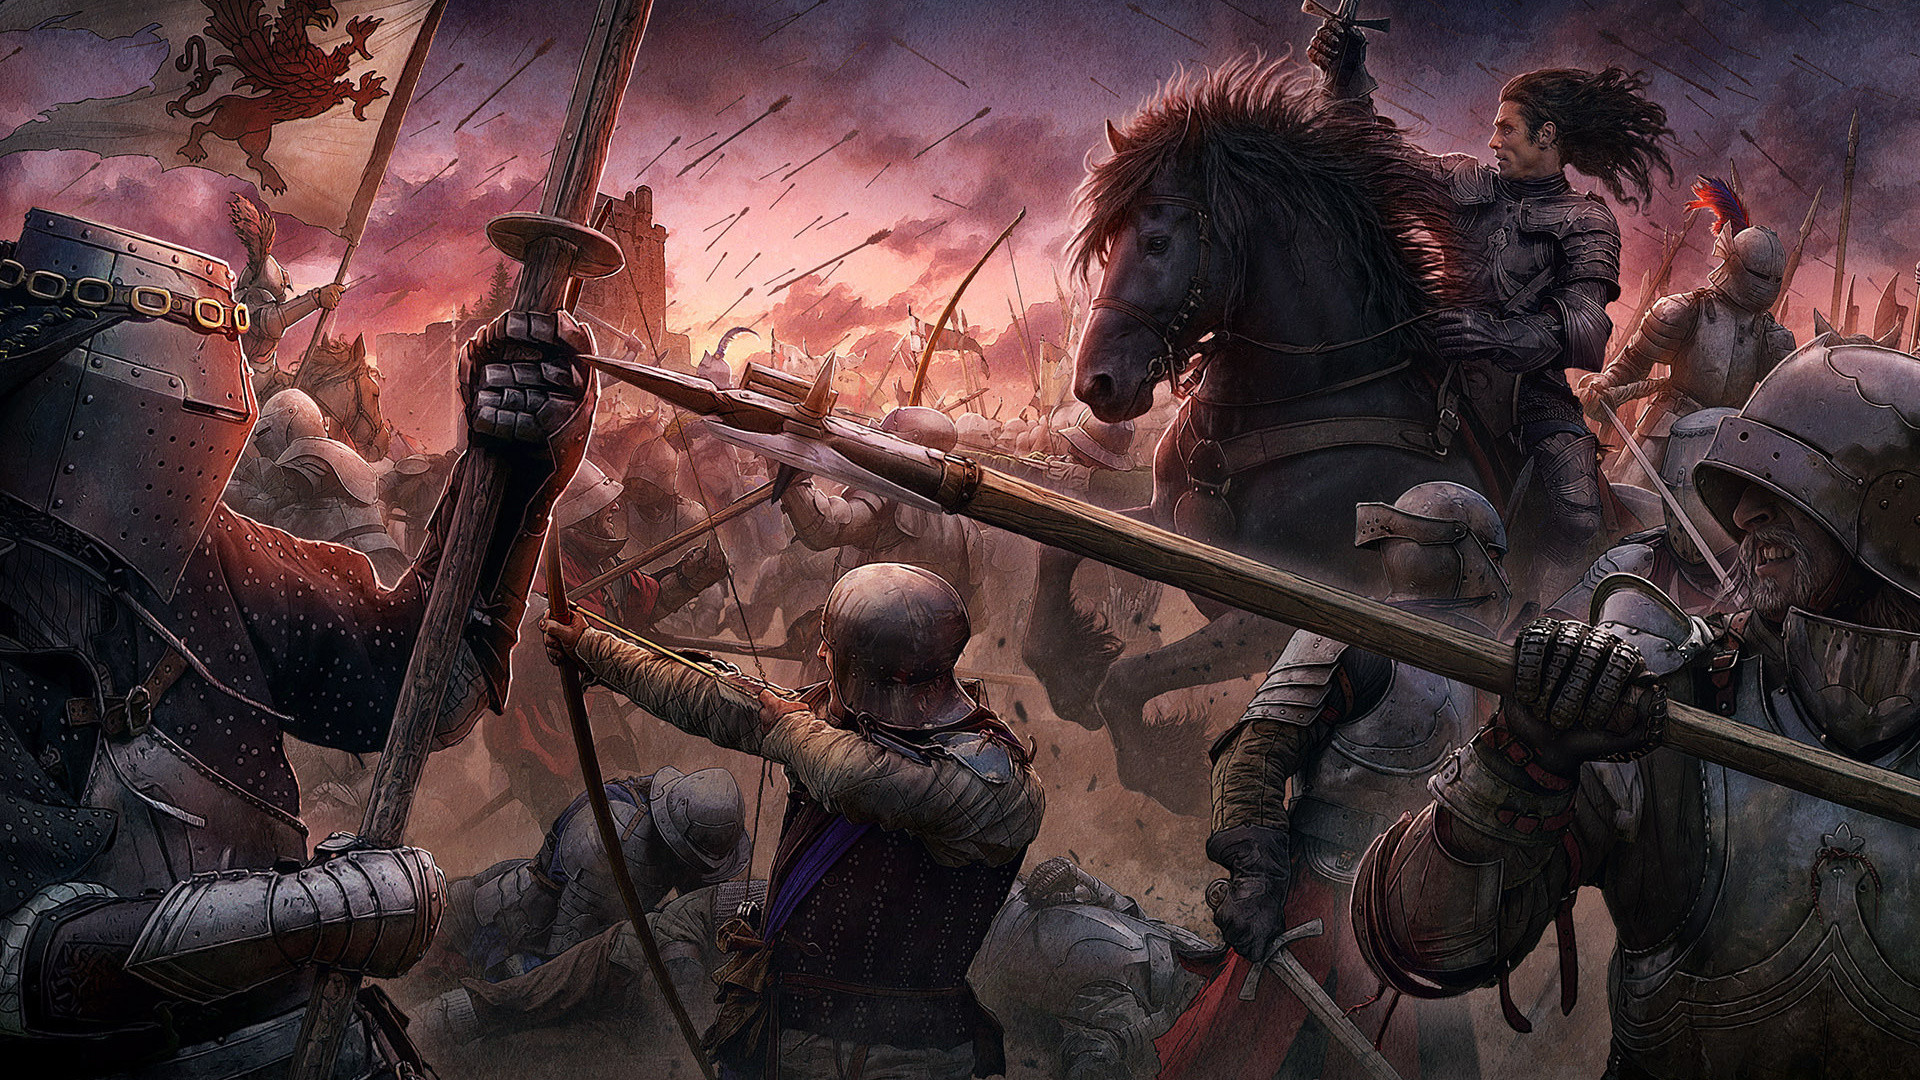 kerem beyit, knights, medieval style, cg wallpapers, the .